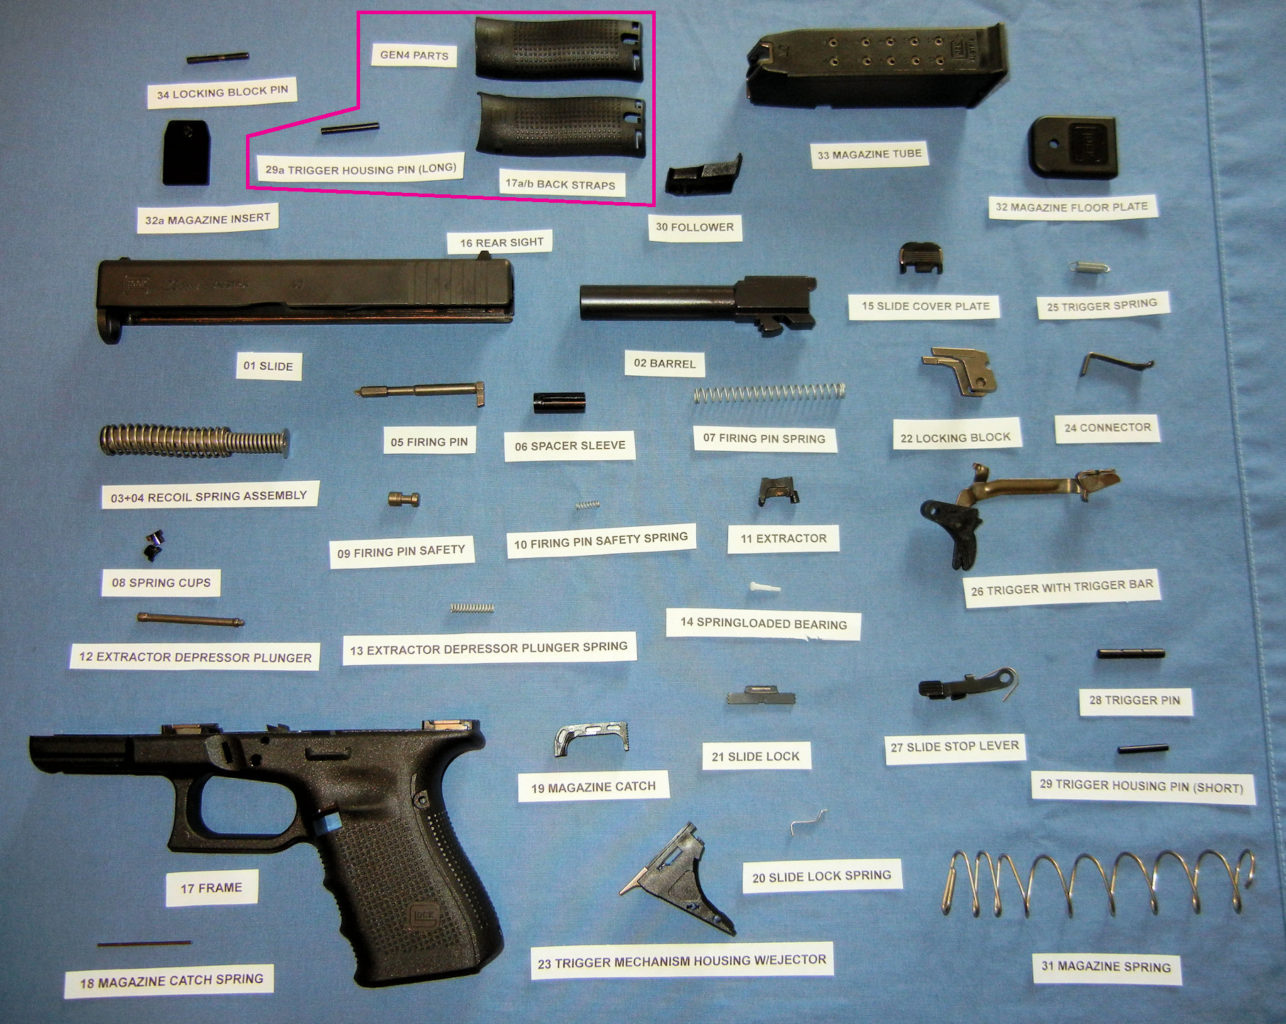 glock 23 disassembly diagram taotao 49cc scooter wiring does 19 39s generation 4 deliver the goods